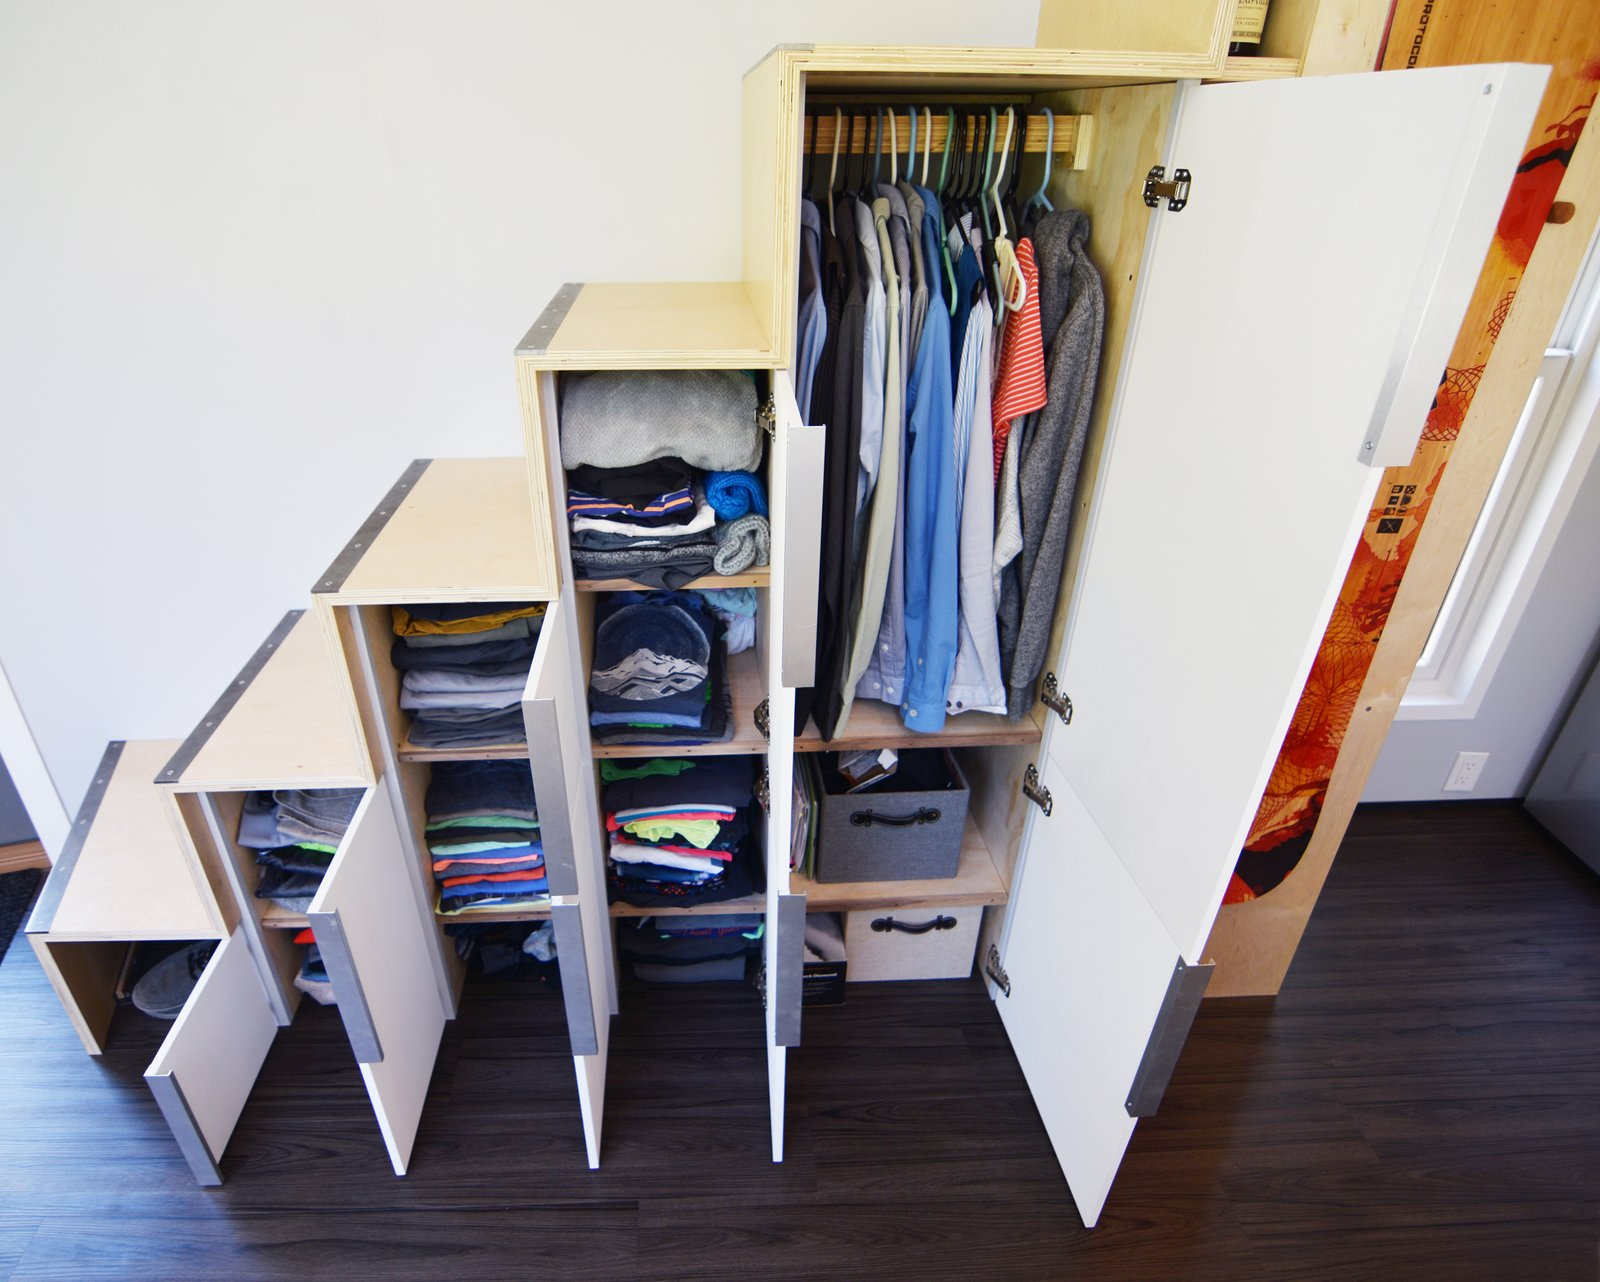 Plenty of storage spaces were created under the stairs.